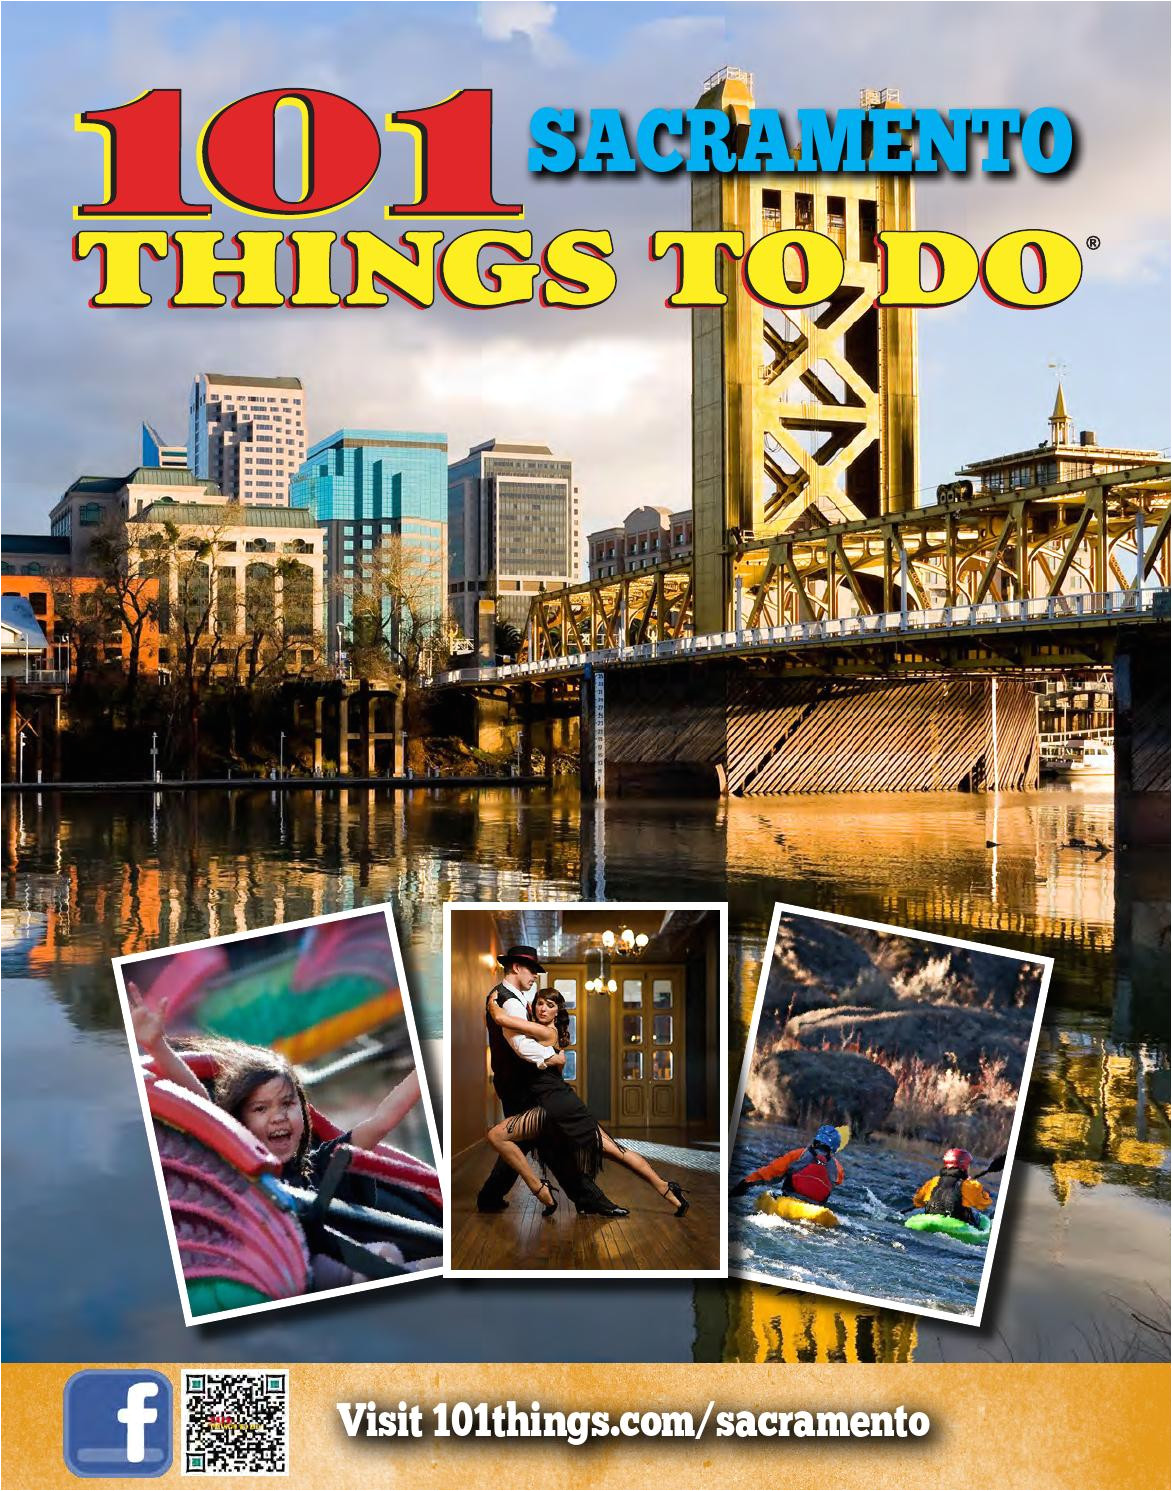 101 things to do sacramento 2014 by 101 things to do publications issuu